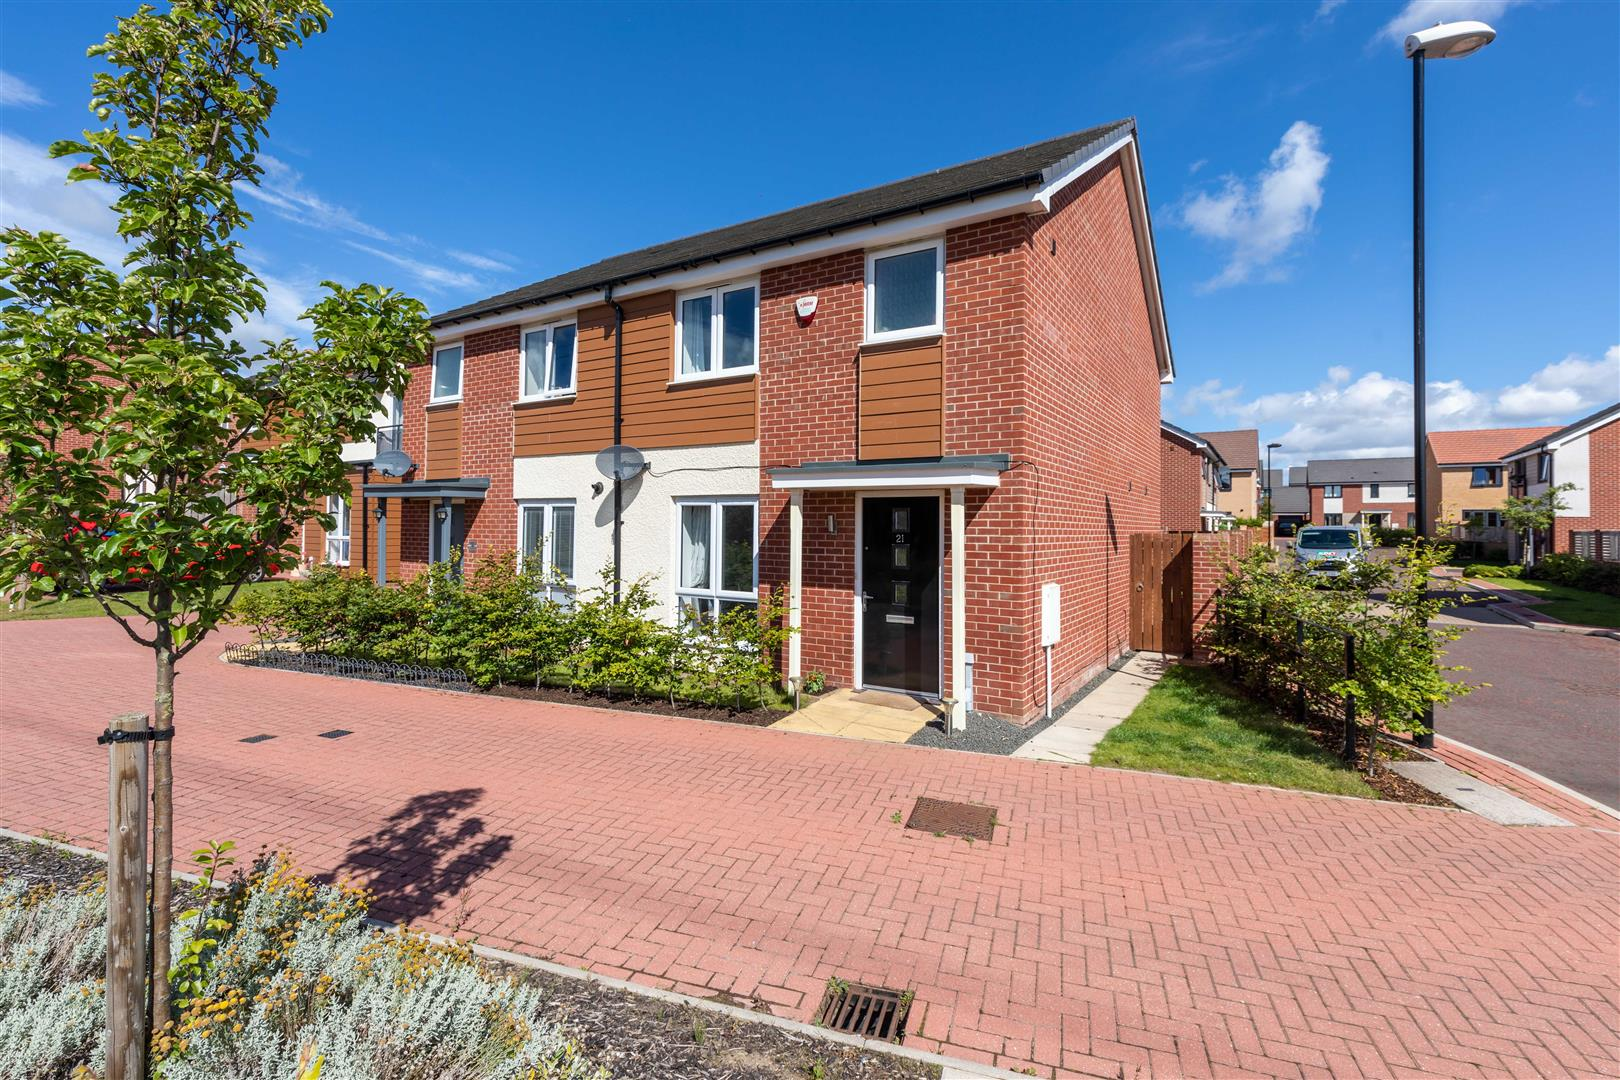 3 bed semi-detached house for sale in Shotton View, Great Park - Property Image 1